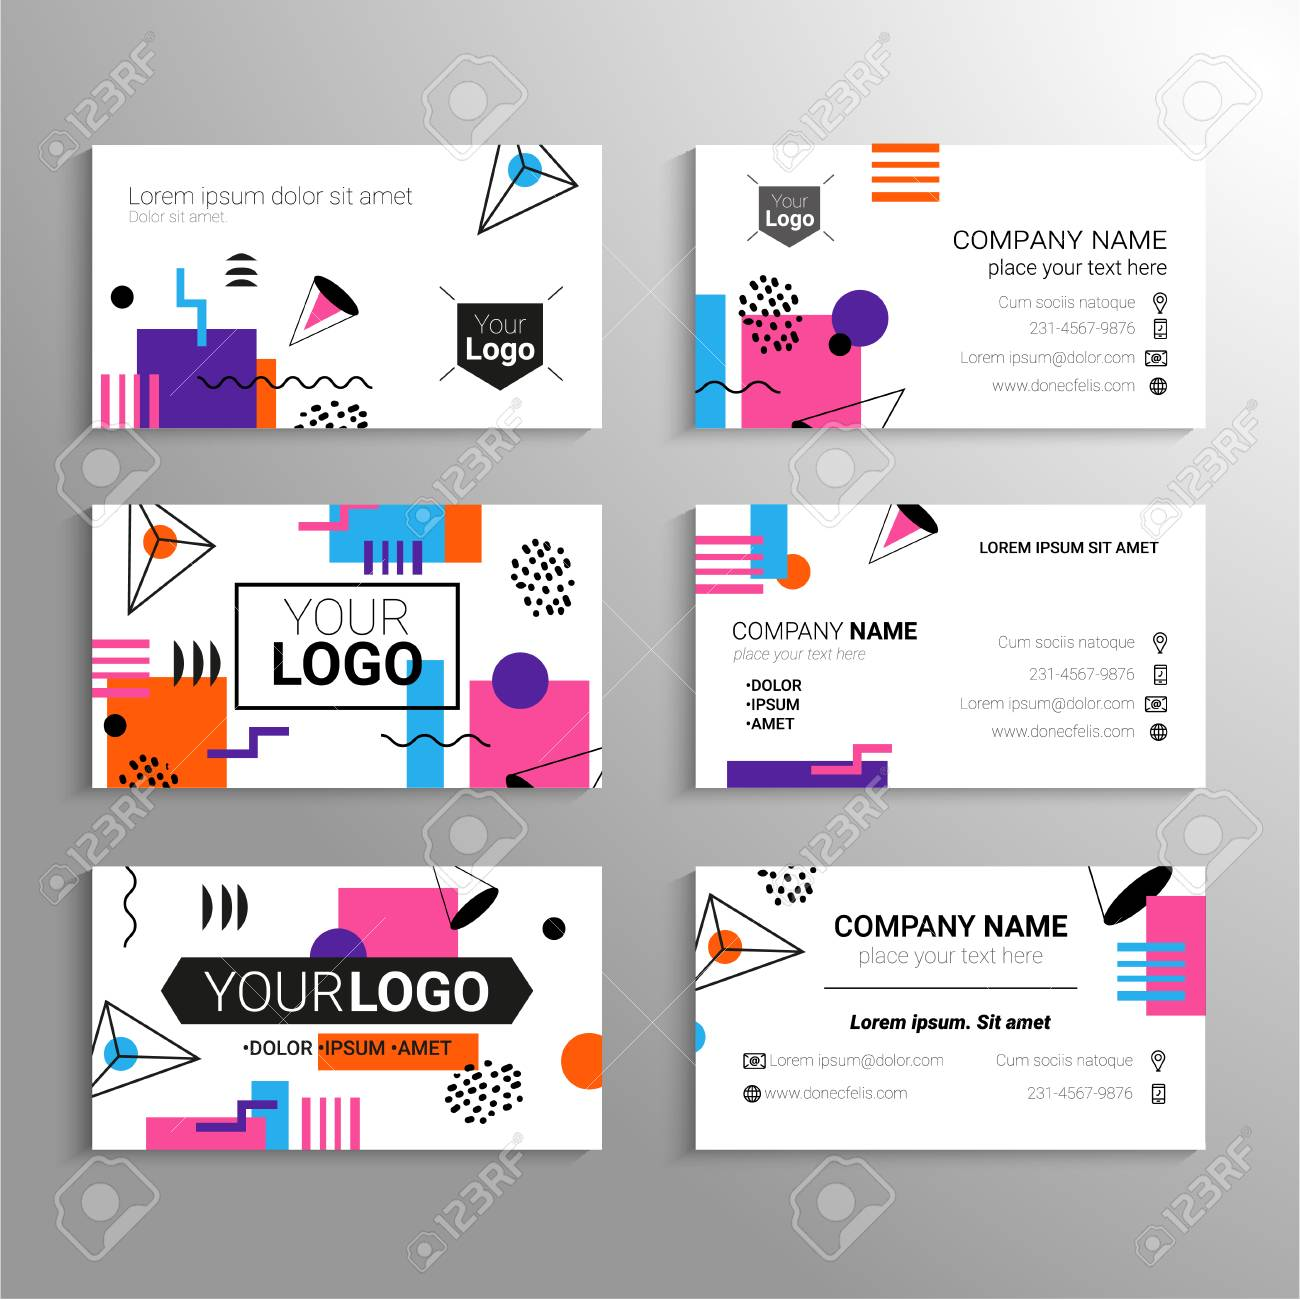 Business cards vector template with abstract flat design business cards vector template with abstract flat design background represent yourself or your company solutioingenieria Choice Image